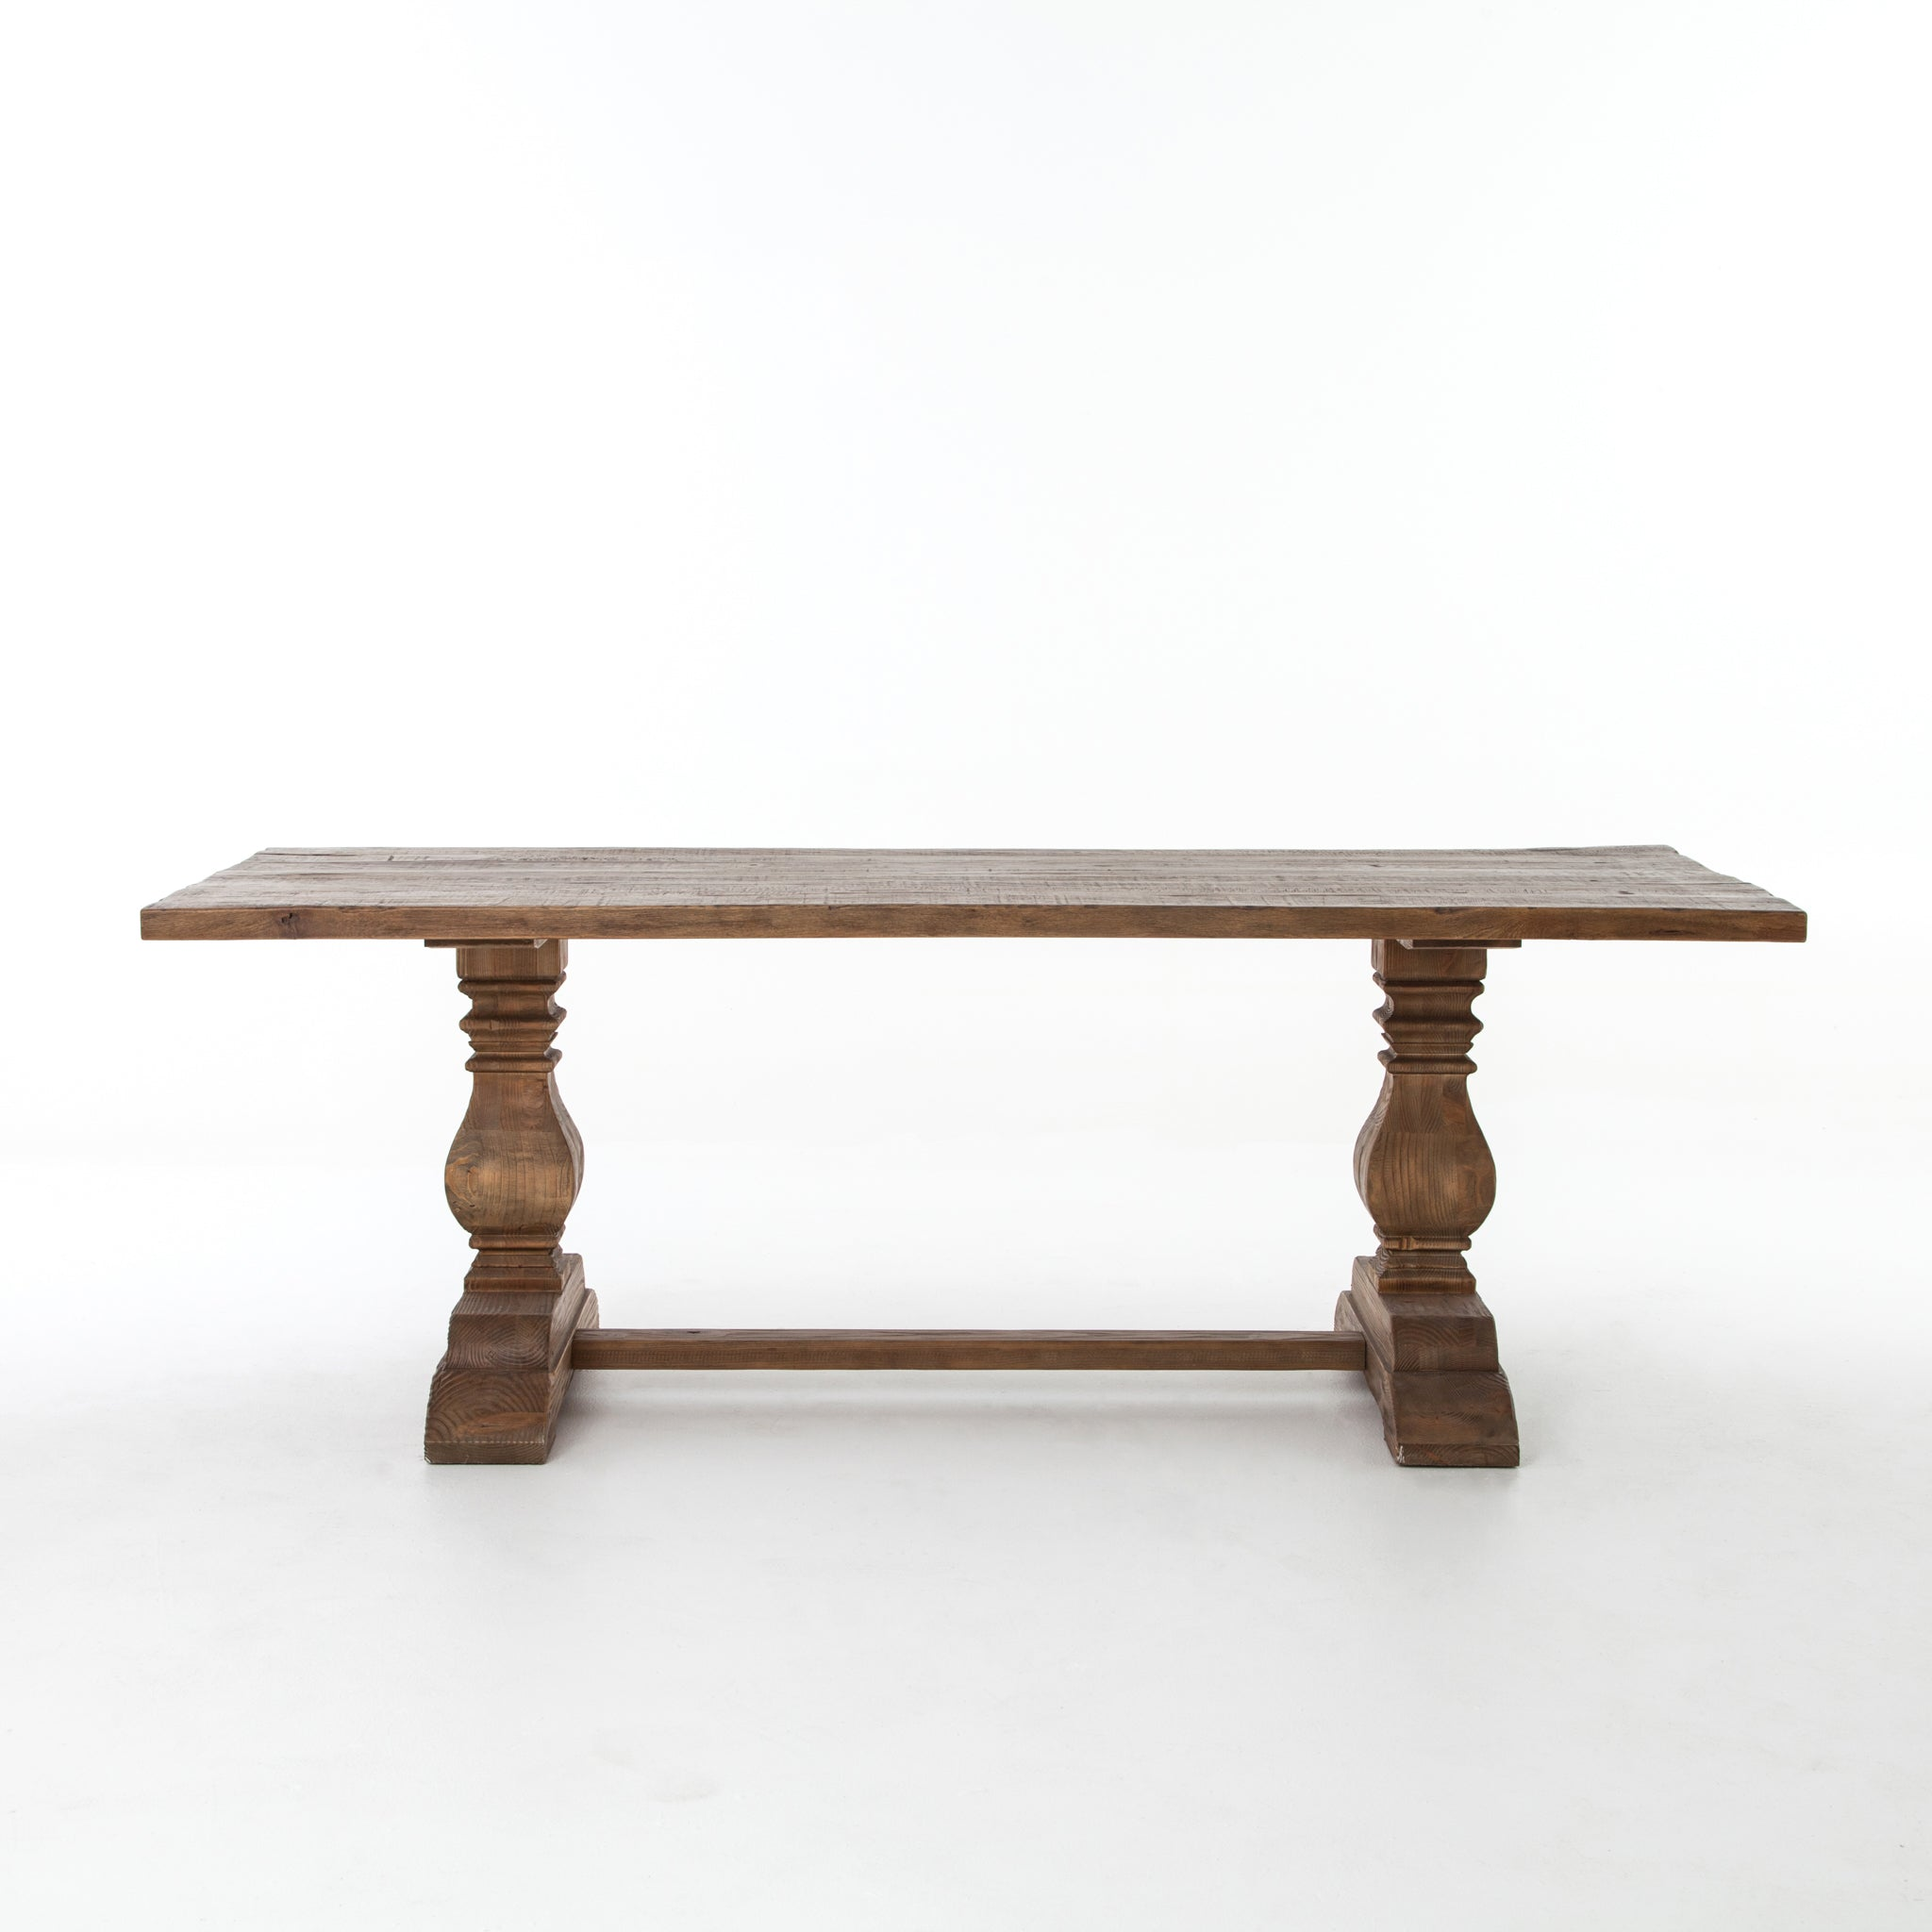 Trestle Rectangular Dining Table 87""